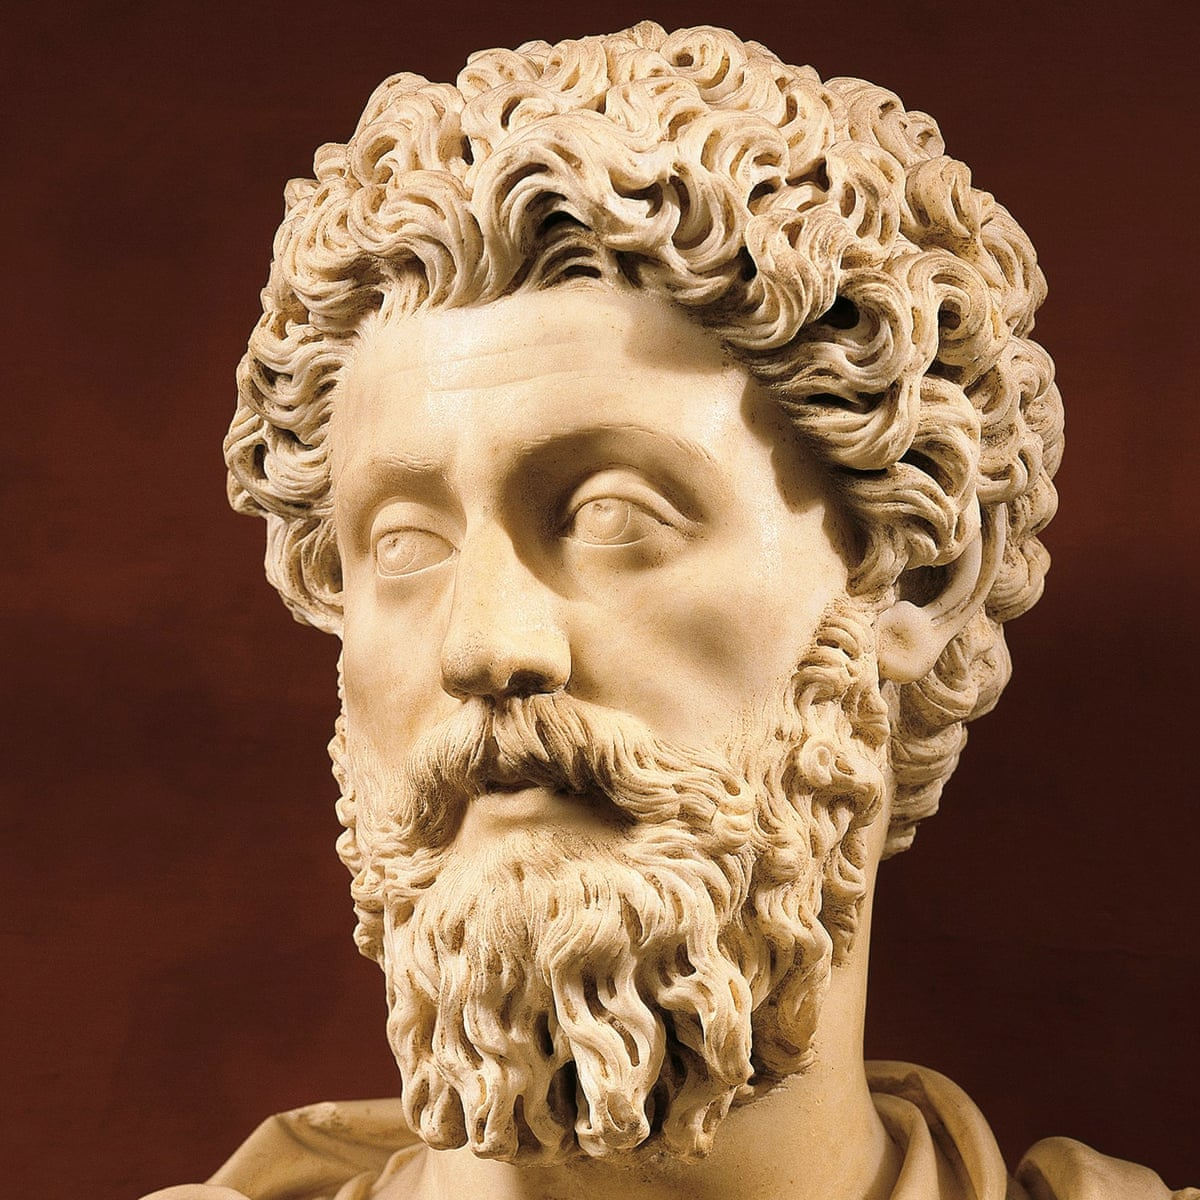 Stoicism in a time of pandemic: how Marcus Aurelius can help | Classics |  The Guardian